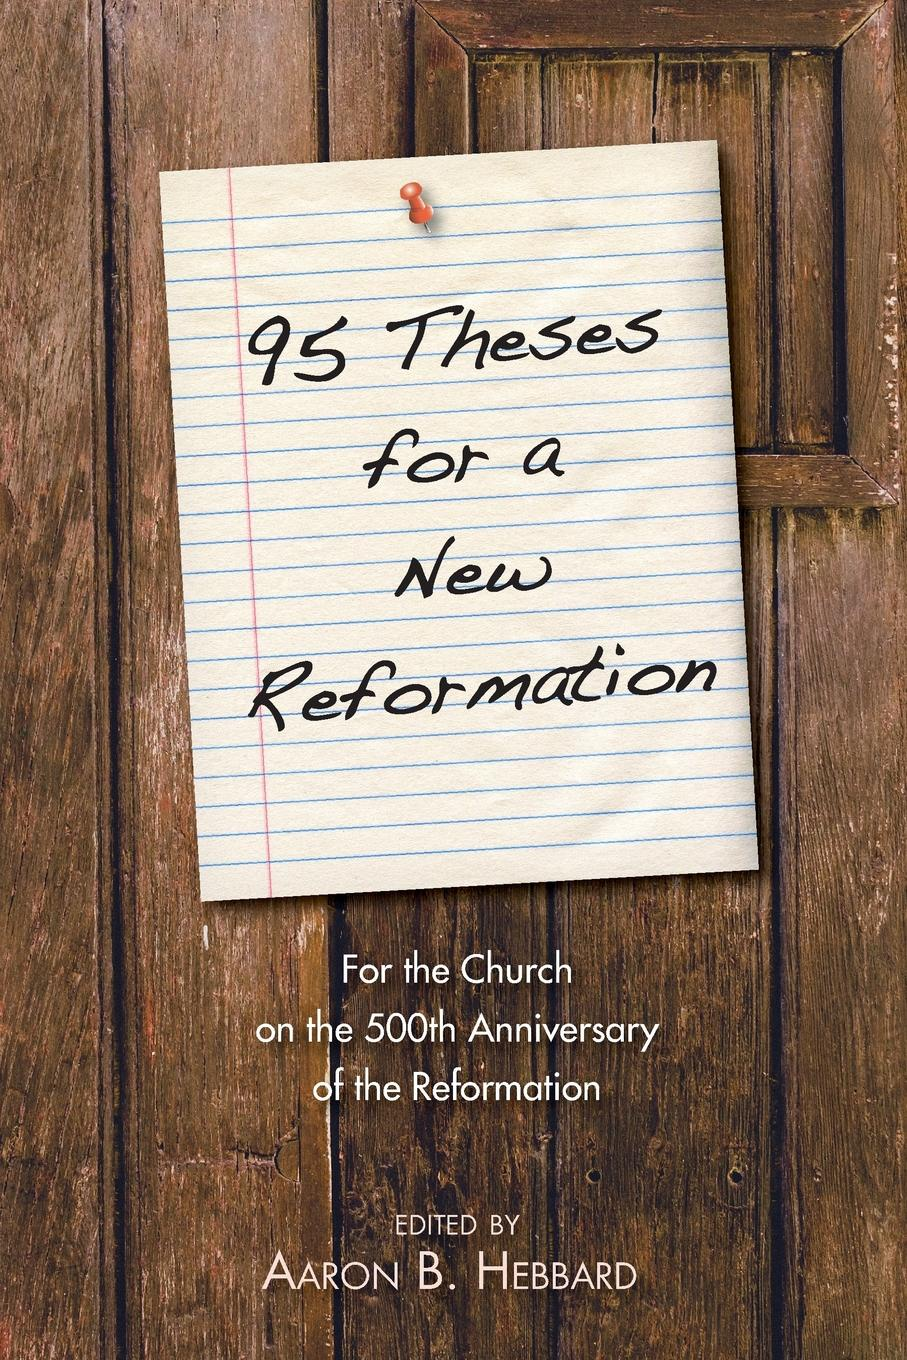 95 Theses for a New Reformation